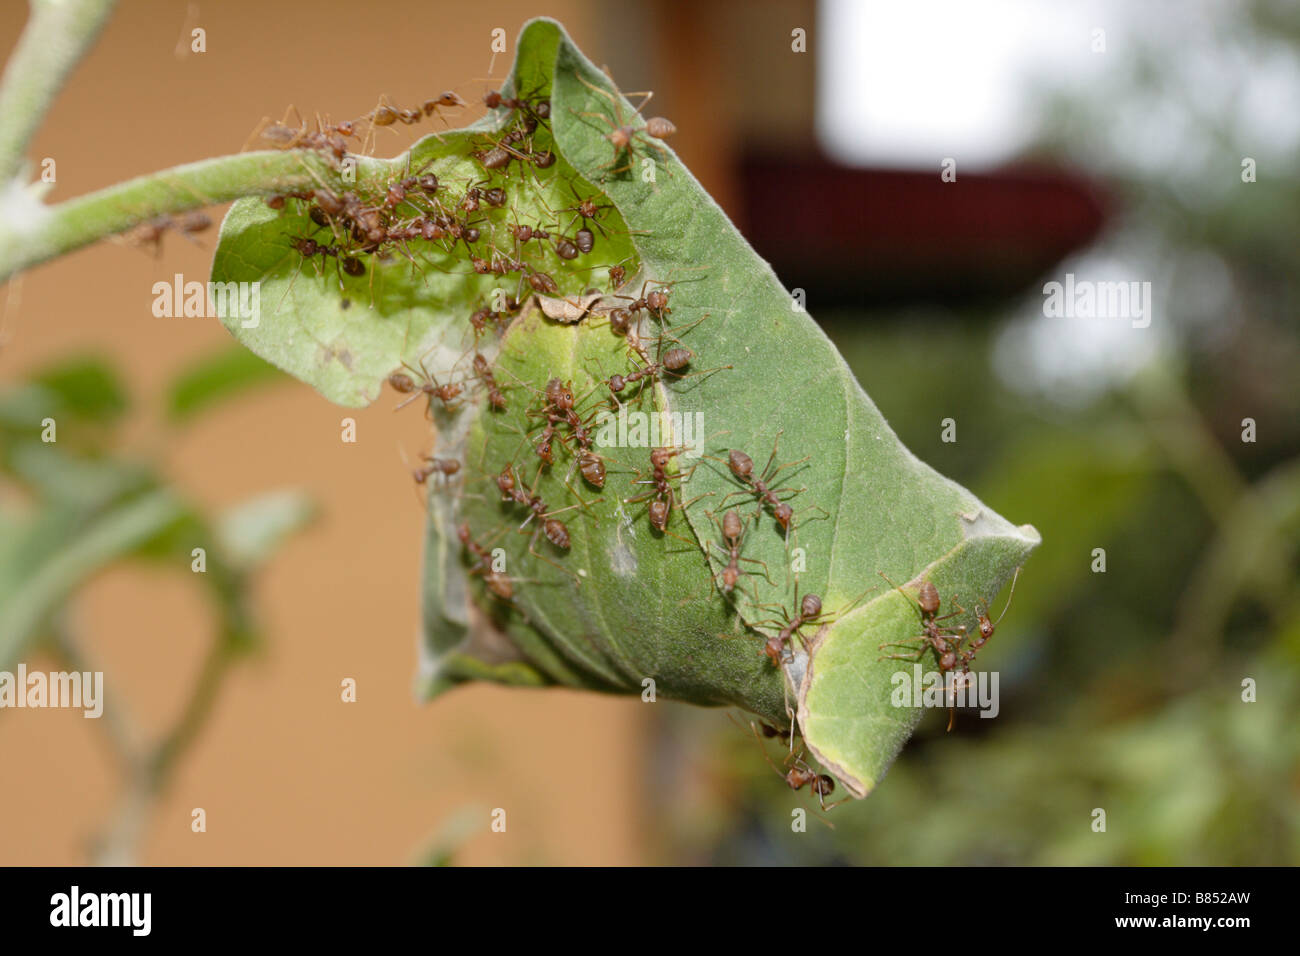 Red Ants Working Together To Build A Nest Stock Photo 22239249 Alamy